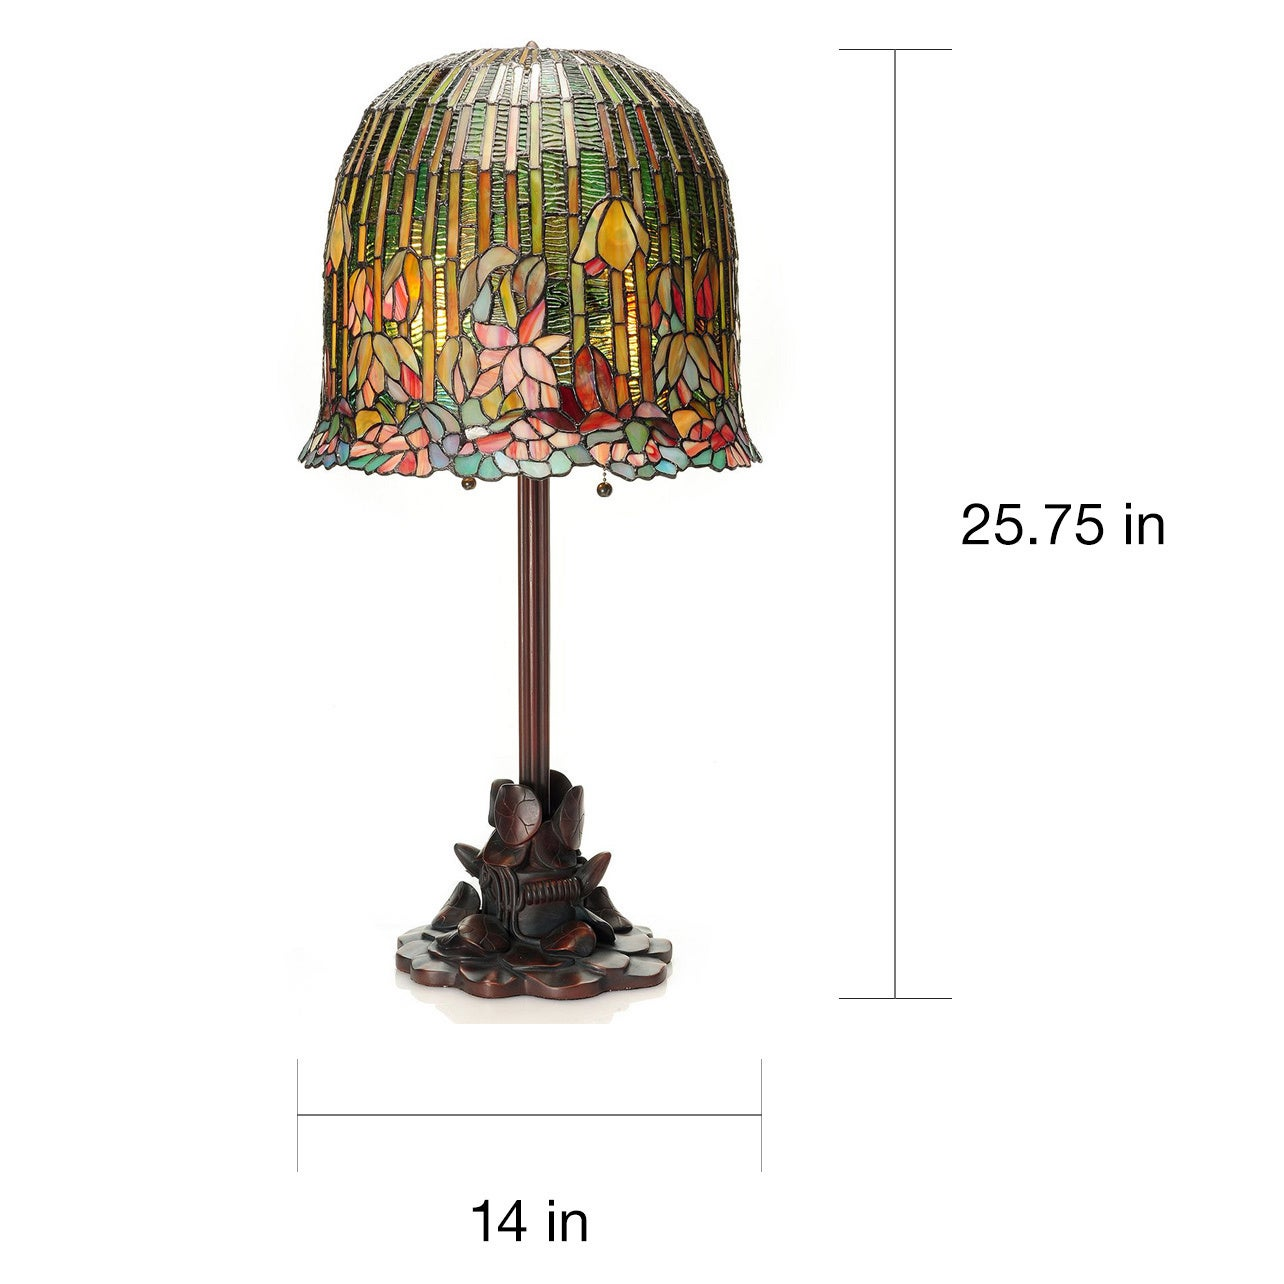 River of goods tiffany style pond lily stained glass table lamp river of goods tiffany style pond lily stained glass table lamp free shipping today overstock 17585211 aloadofball Gallery